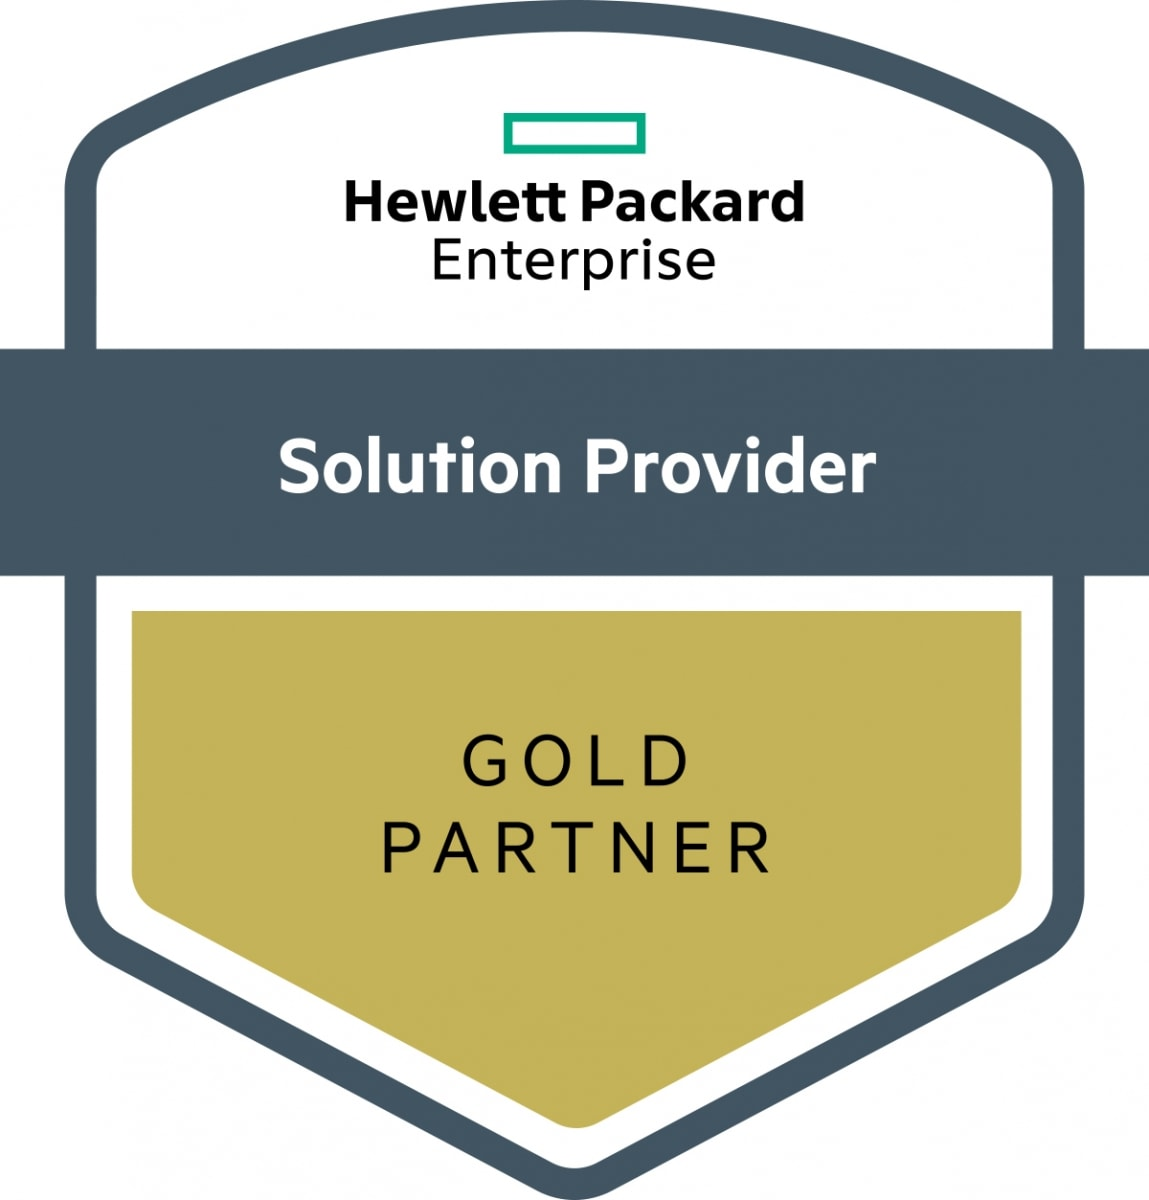 HPE Solution Provider Gold Partner Zertifikat